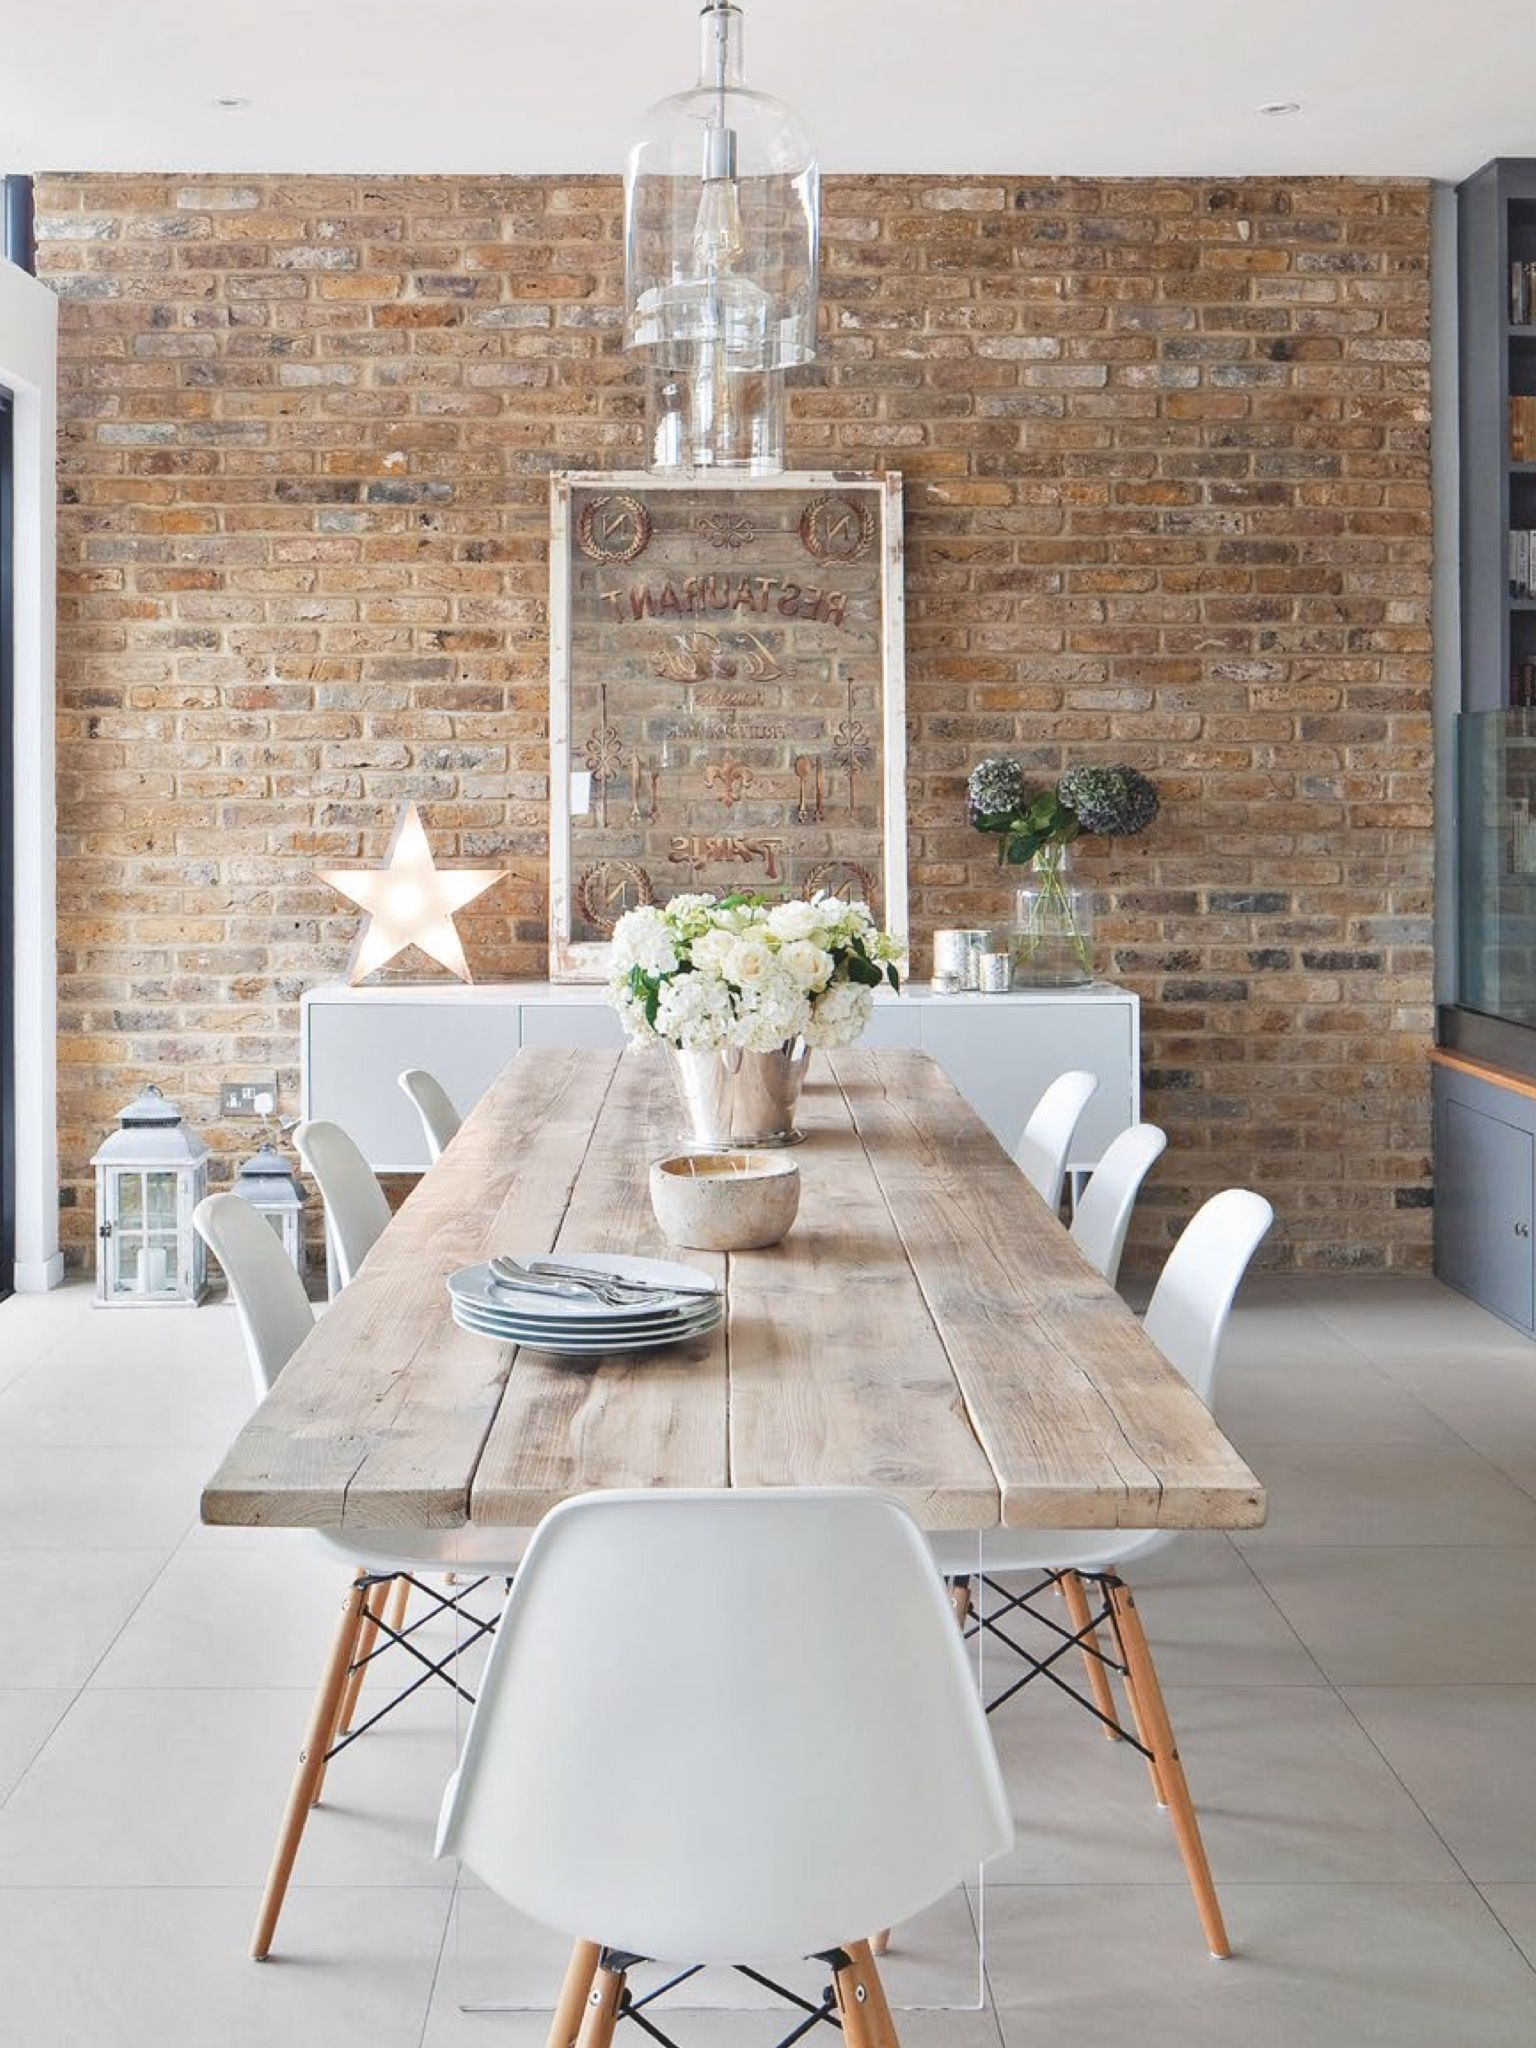 Scandinavian Dining Tables And Chairs Within Most Recently Released Dazzling Scandinavian Dining Room Ideas That Will Steal Your Heart (View 22 of 25)